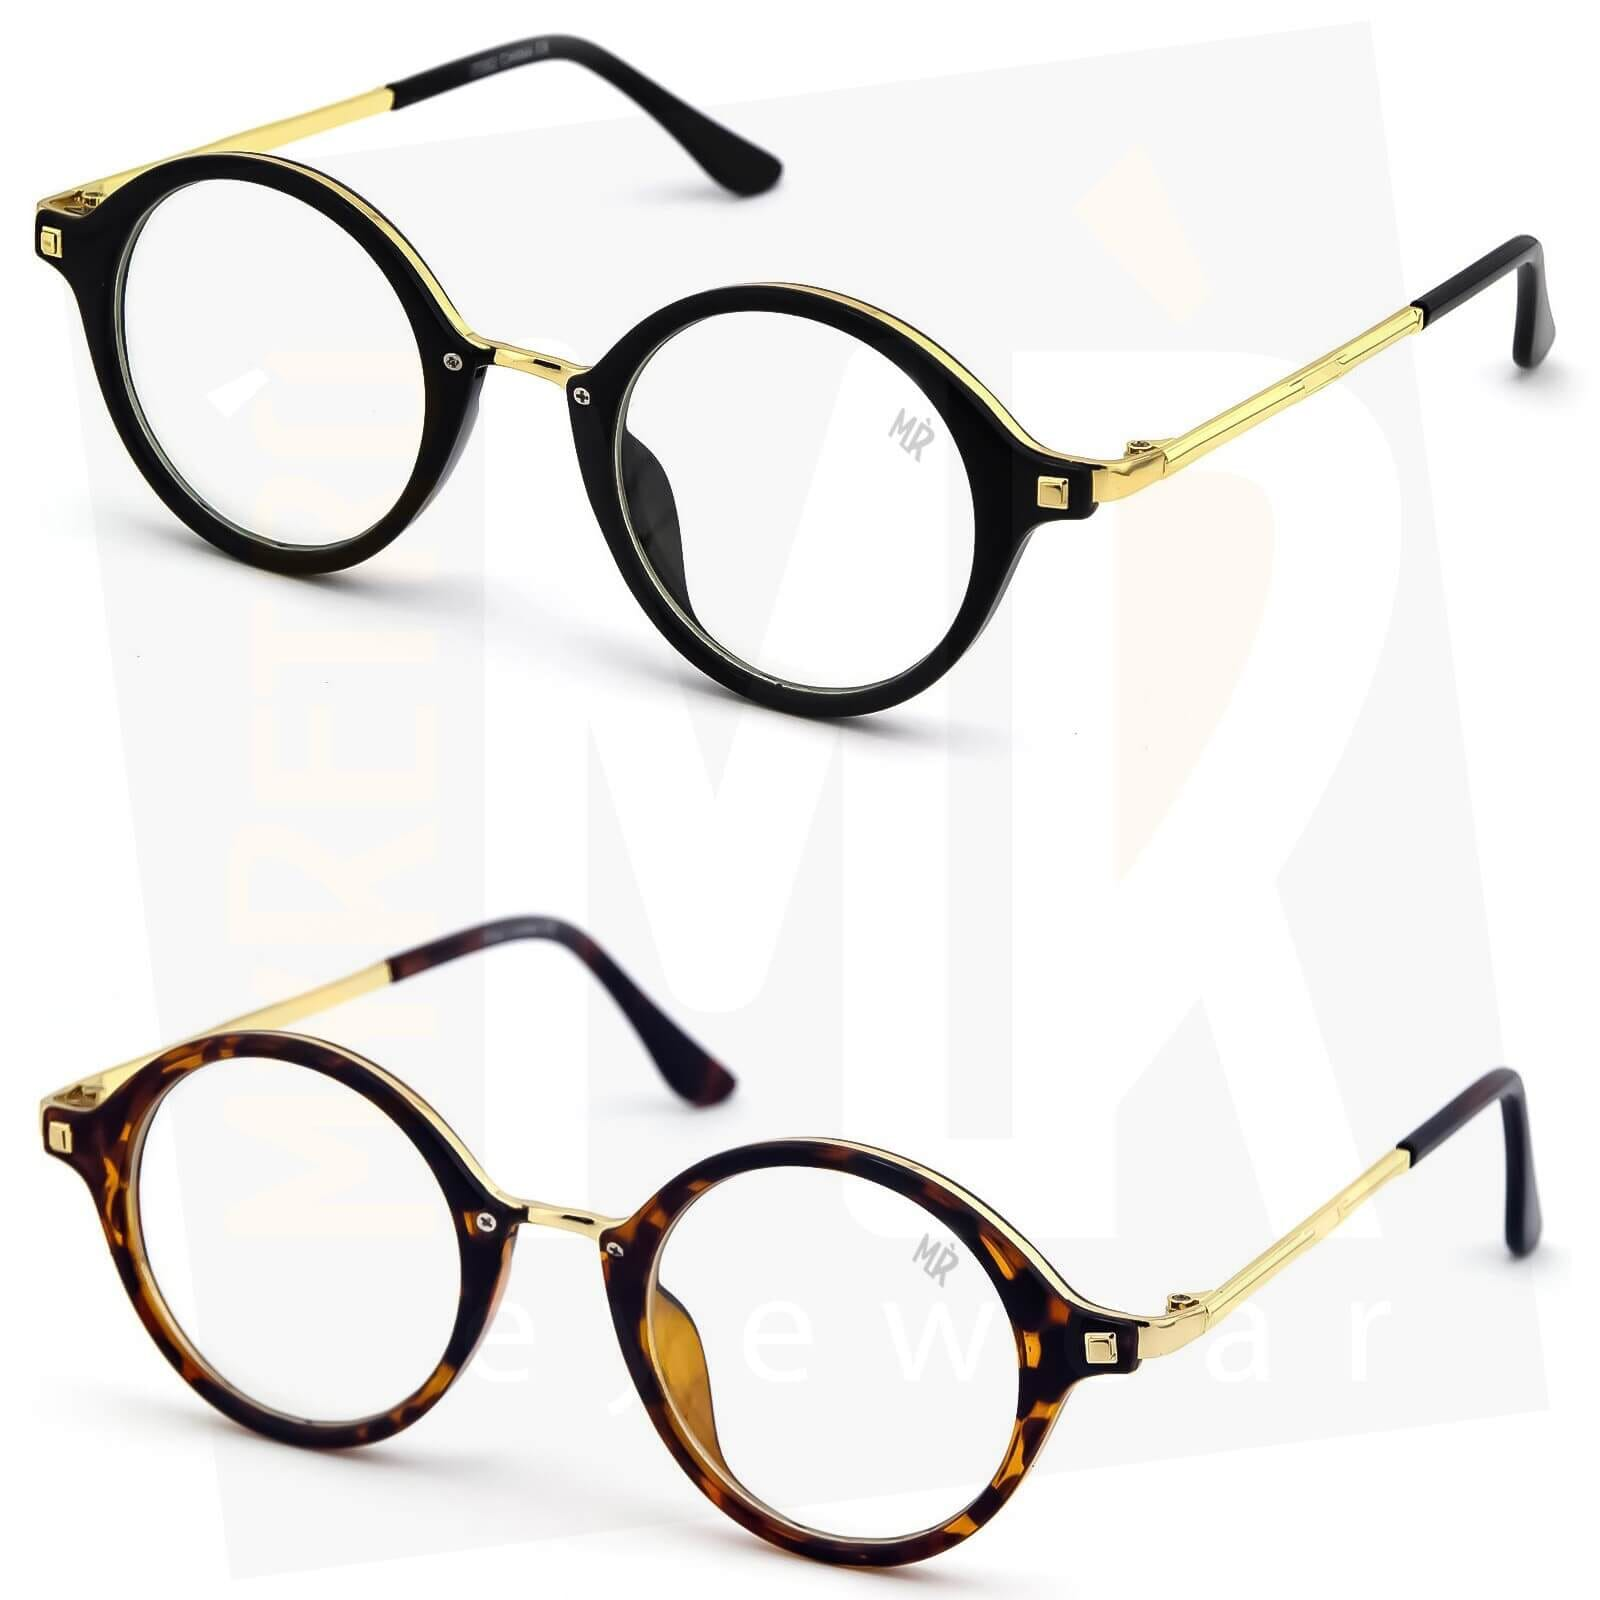 Lunettes MYRETRÒ mod. WATERLOO - fashion vintage celebrity retro - LONDON UnderGround Underground